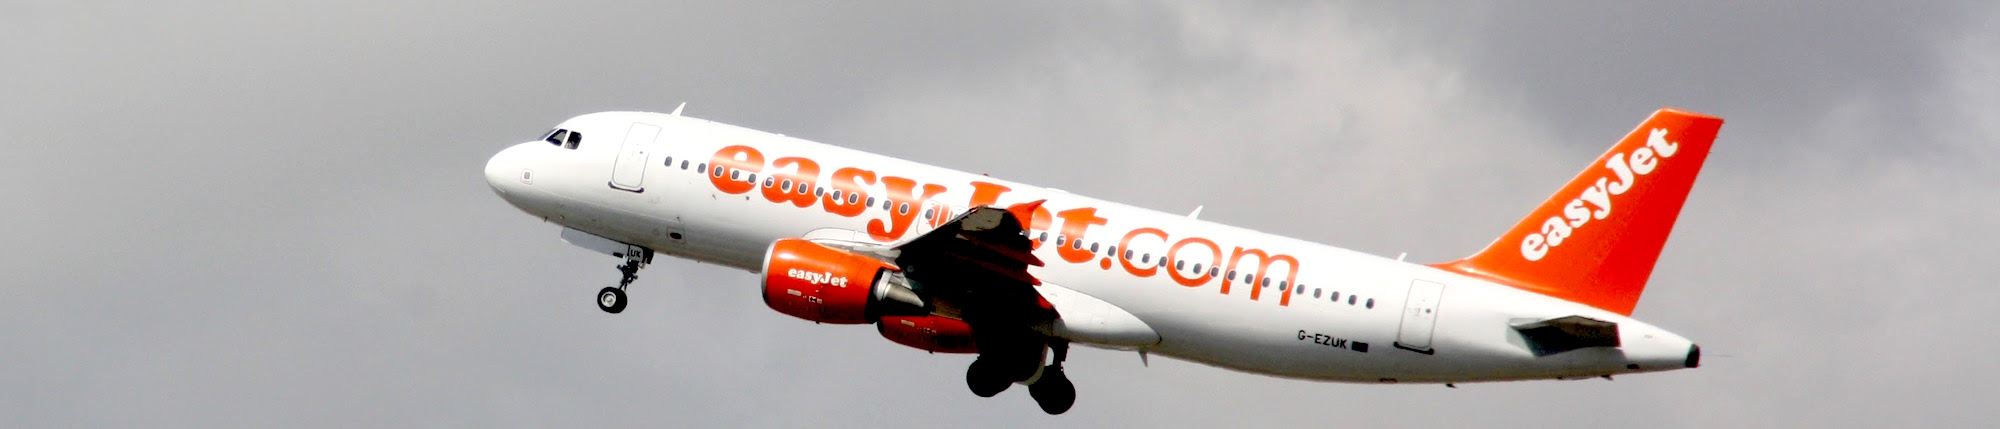 Best time to book flights for Bristol (BRS) to Toulouse (TLS) flights with EasyJet at AirHint